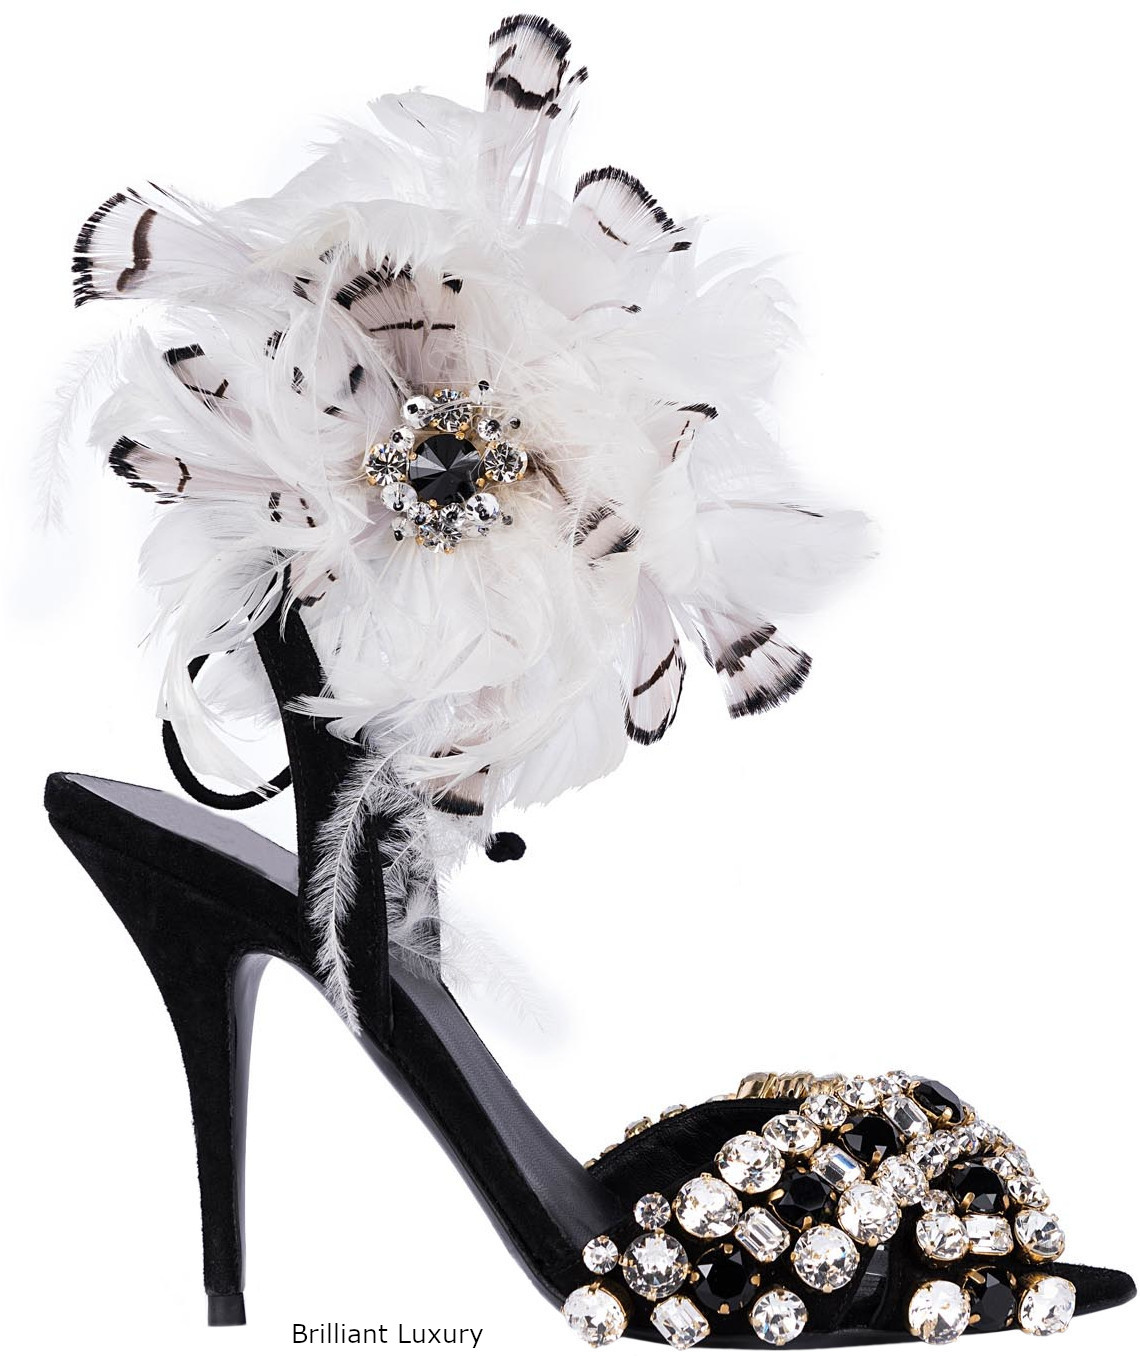 Gedebe bejeweled and feathered sandals in black and white